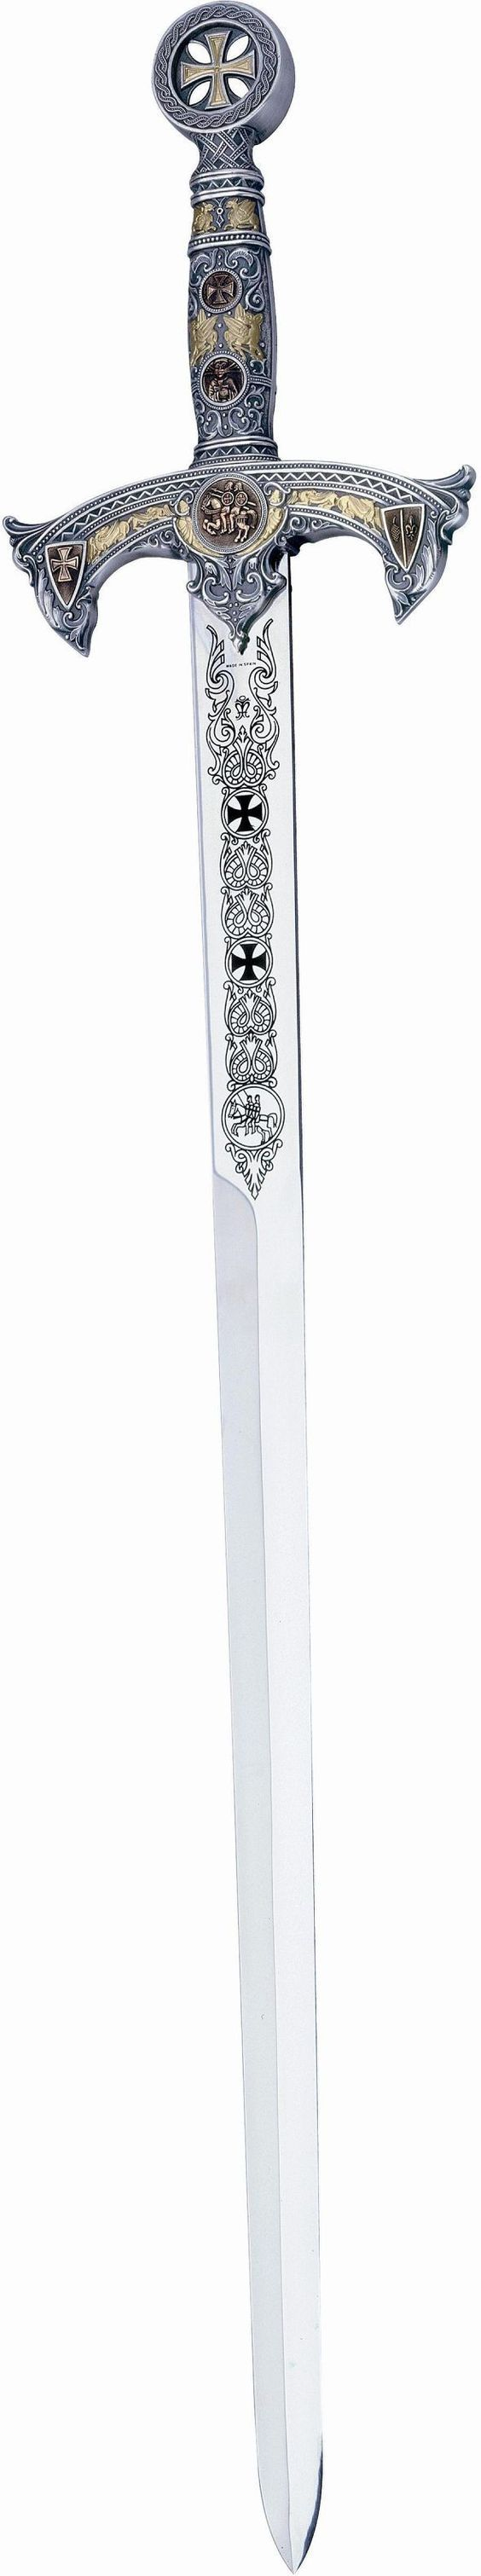 Knights Templar: Silver Deluxe #Templar #Knights Sword, by Marto of Spain.: